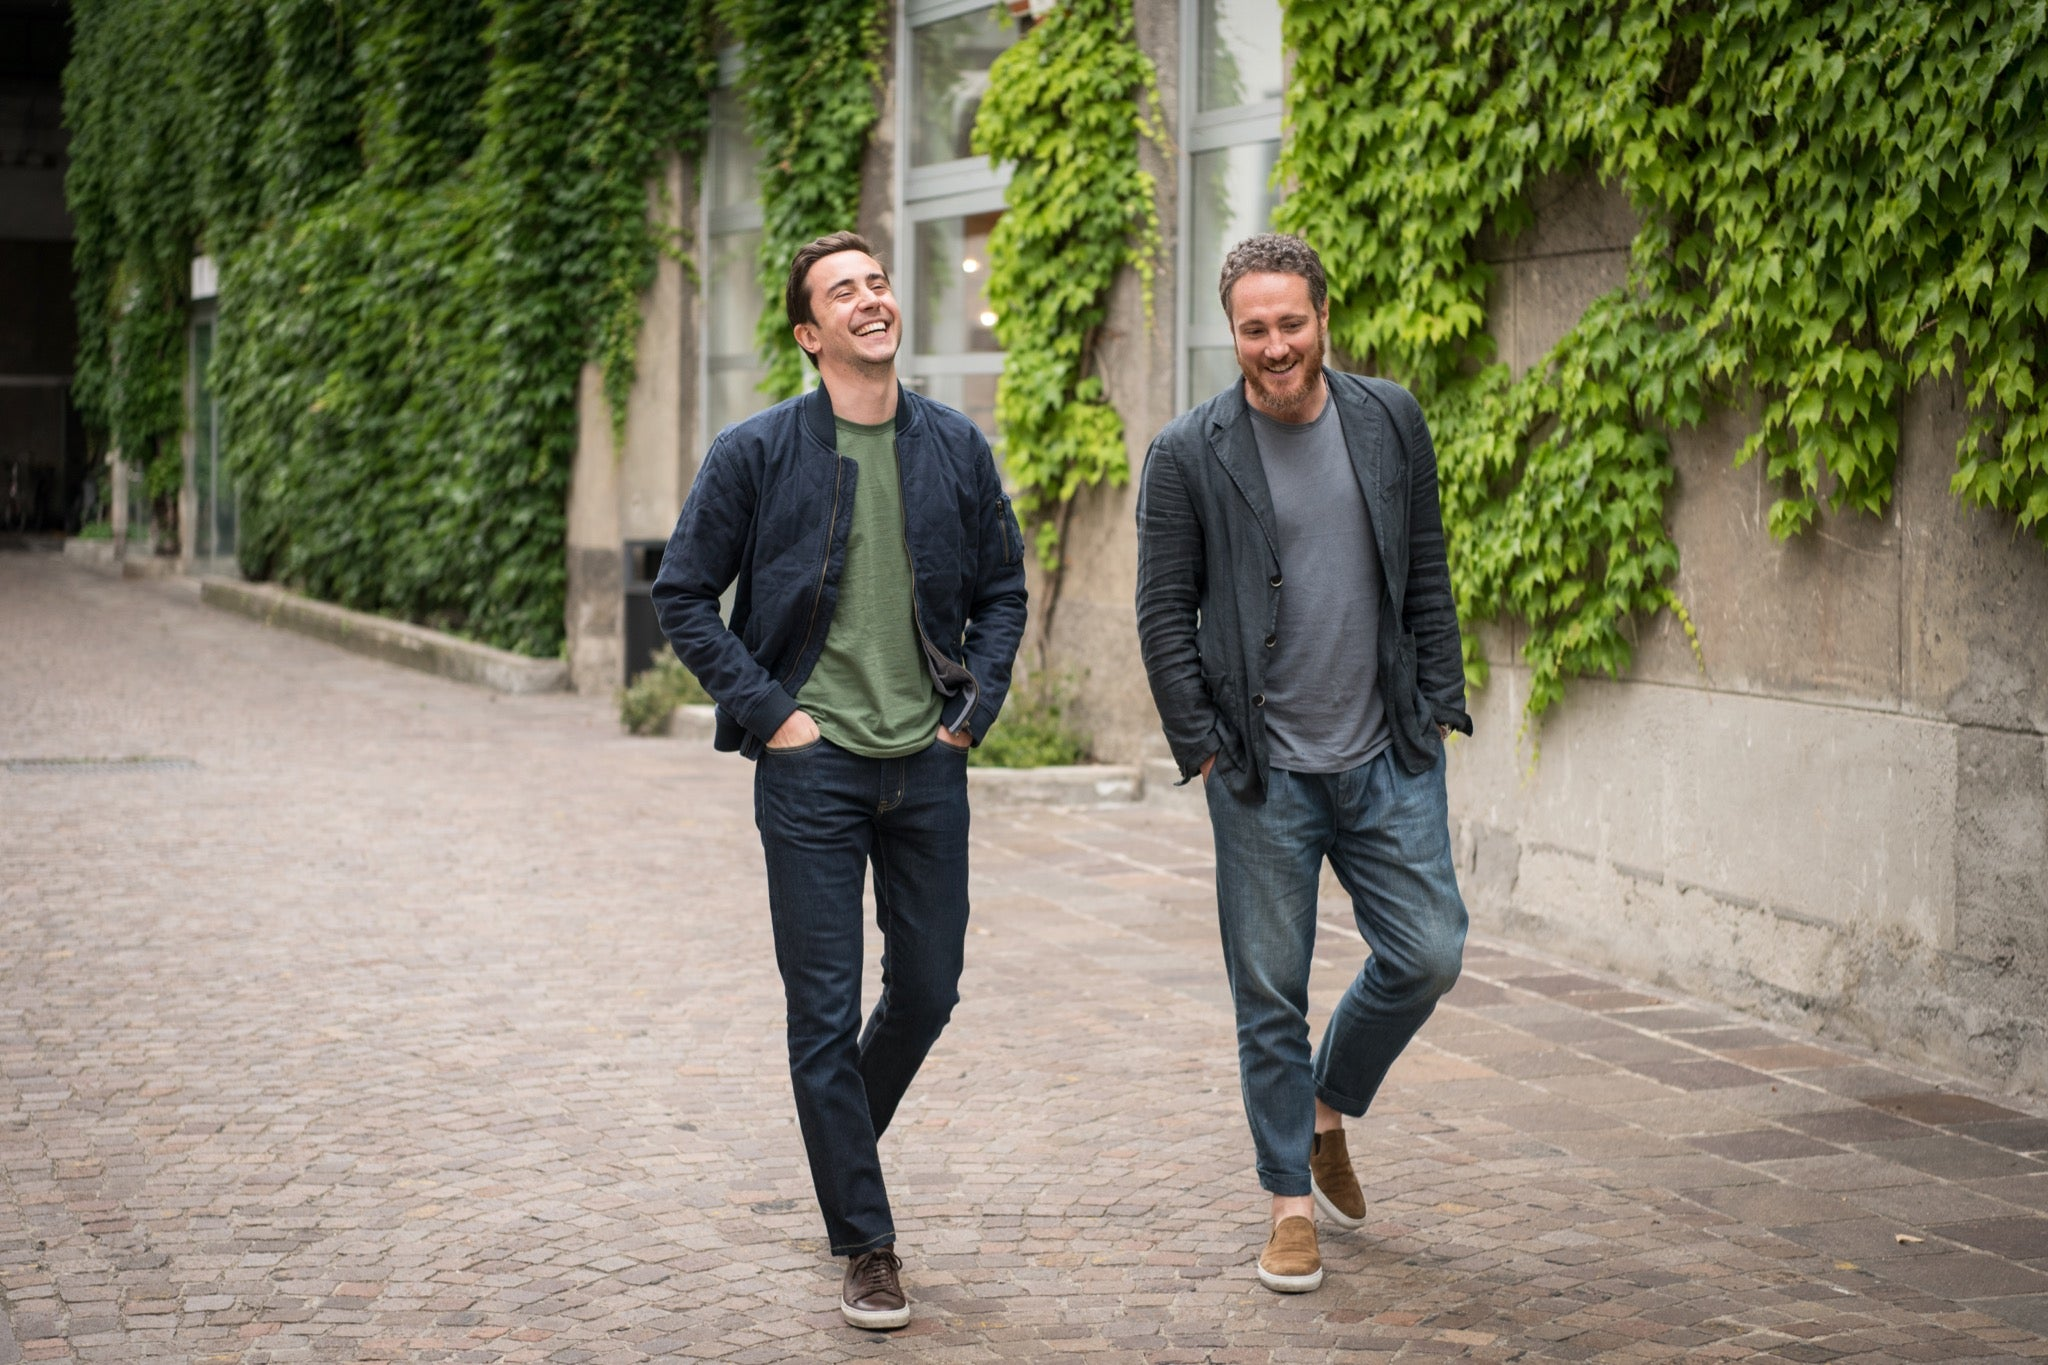 Co-founders Enrico Castai (left) and Jacopo Sebastio (right) in the Tortona district of Milan, where Velasca is headquartered.